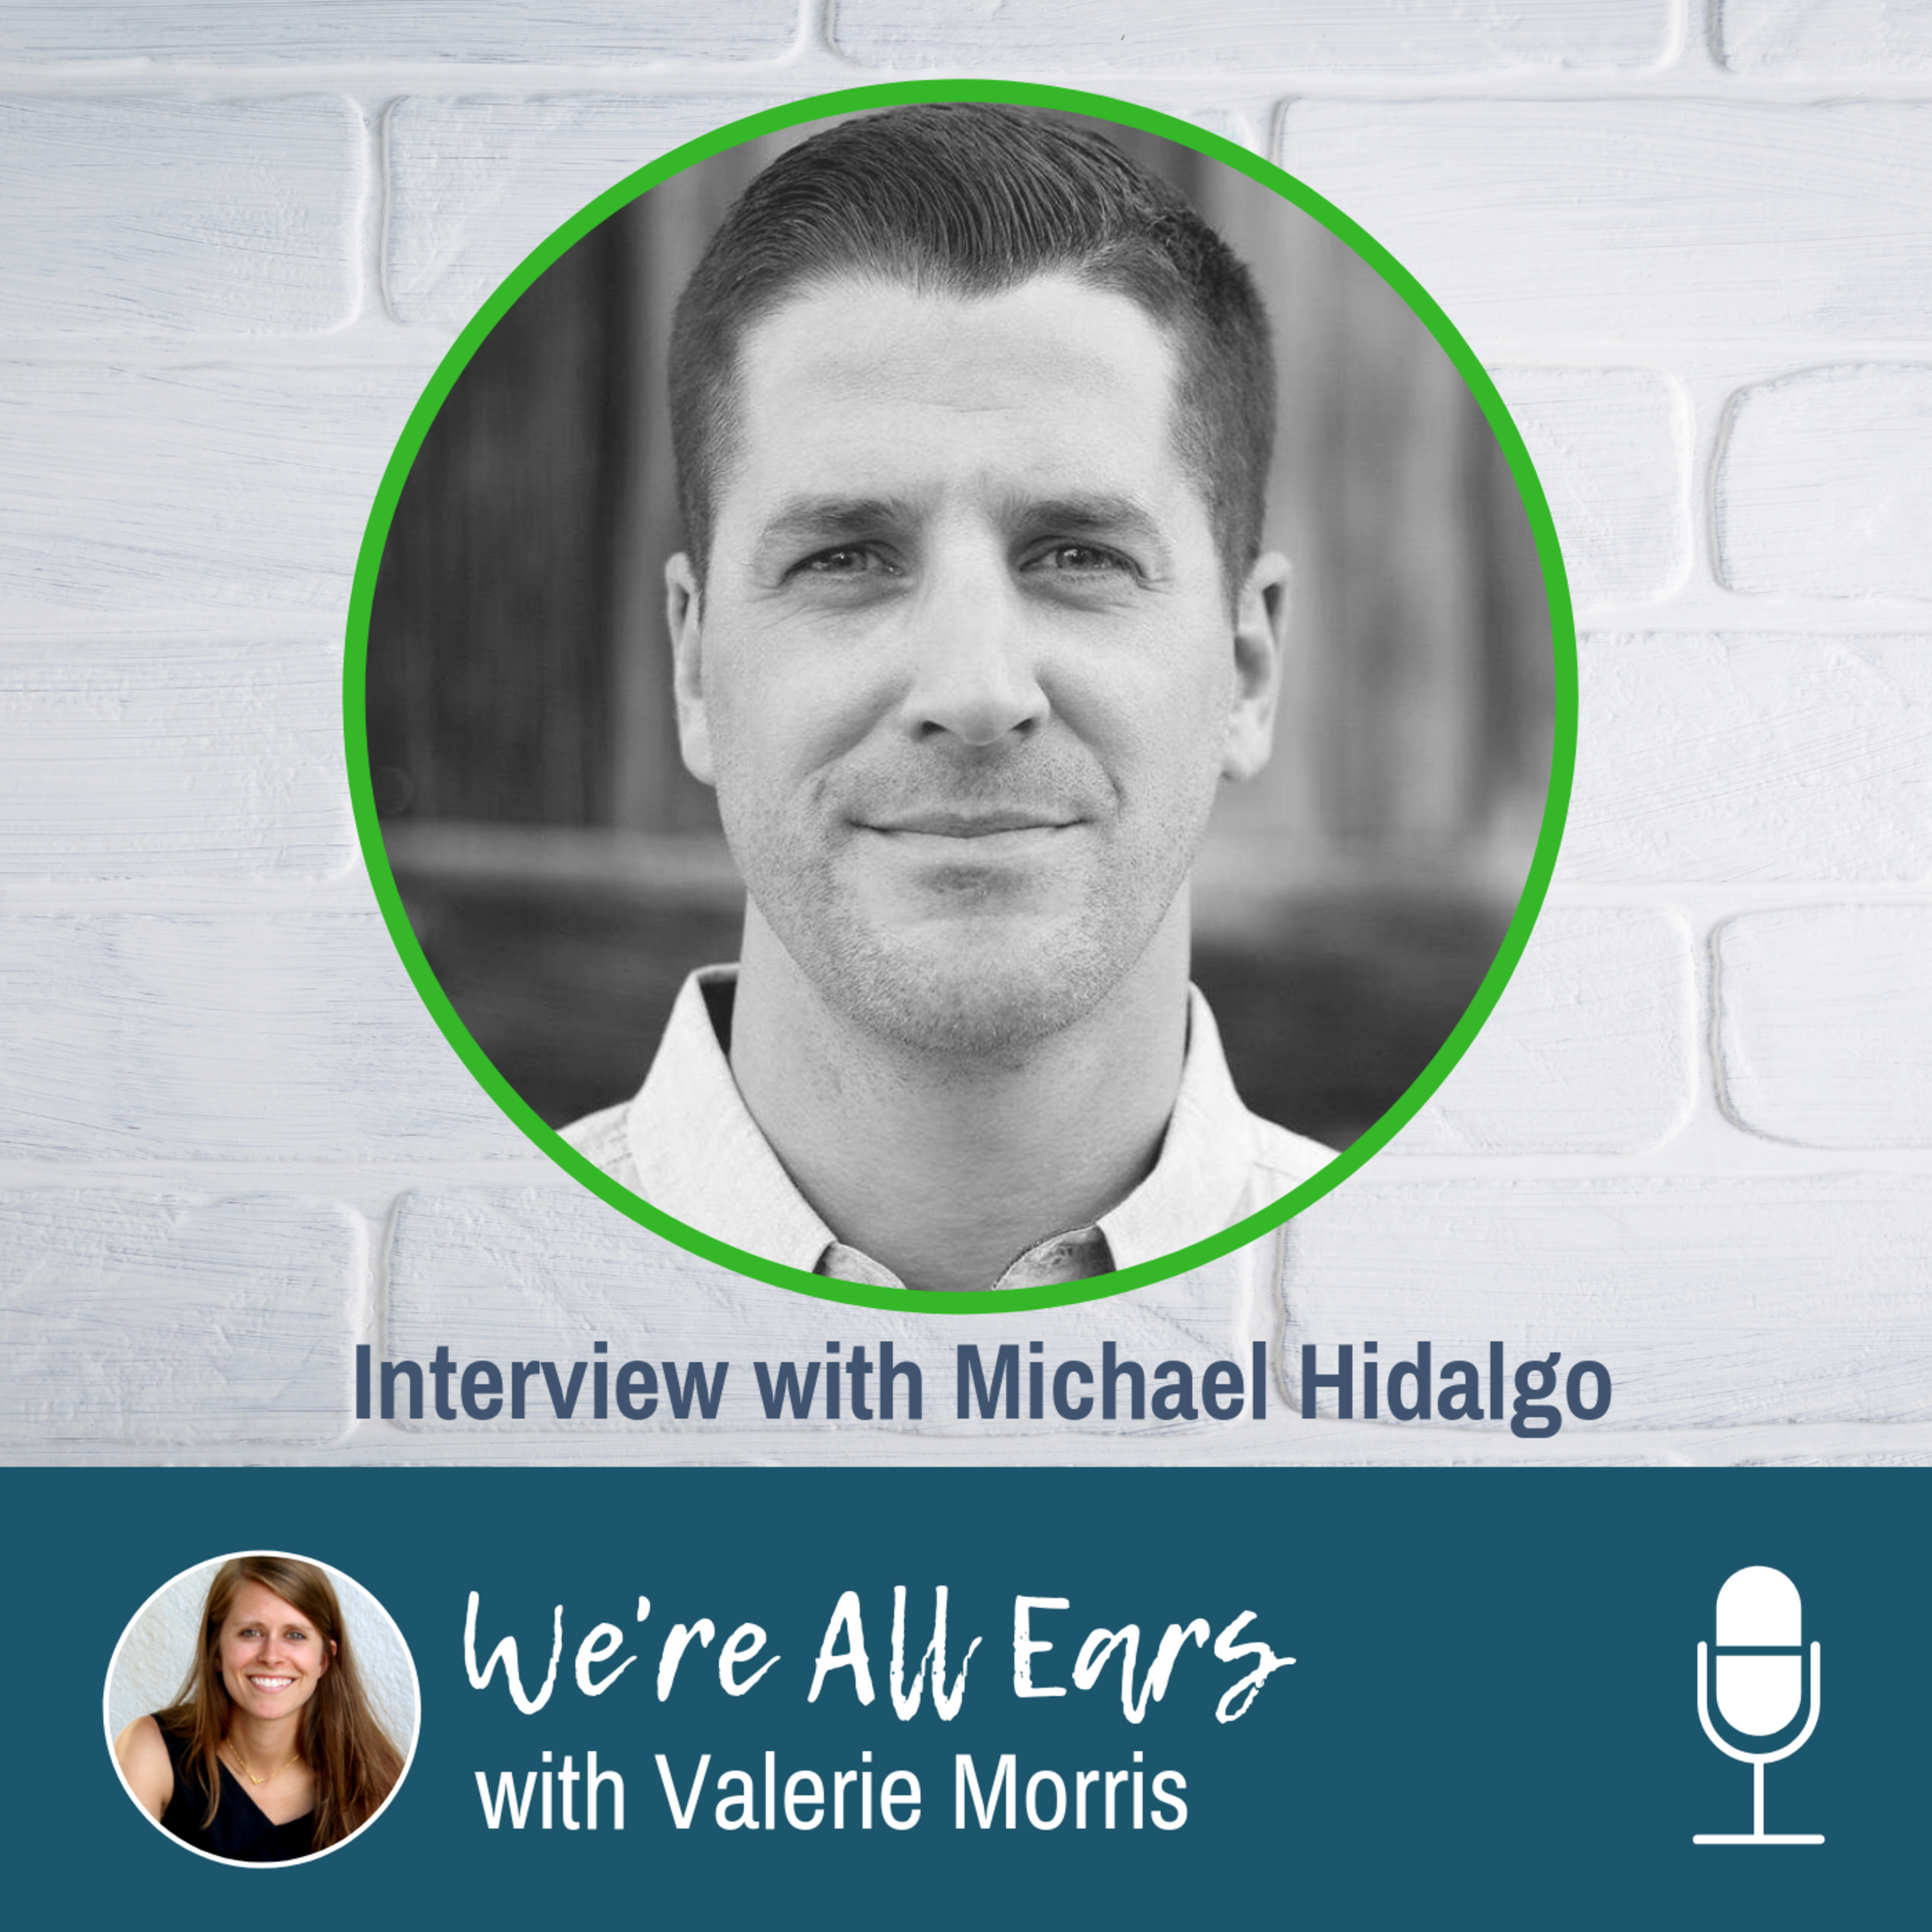 We're All Ears Interview Series: Sharing Our Message With Wisdom With Michael Hidalgo